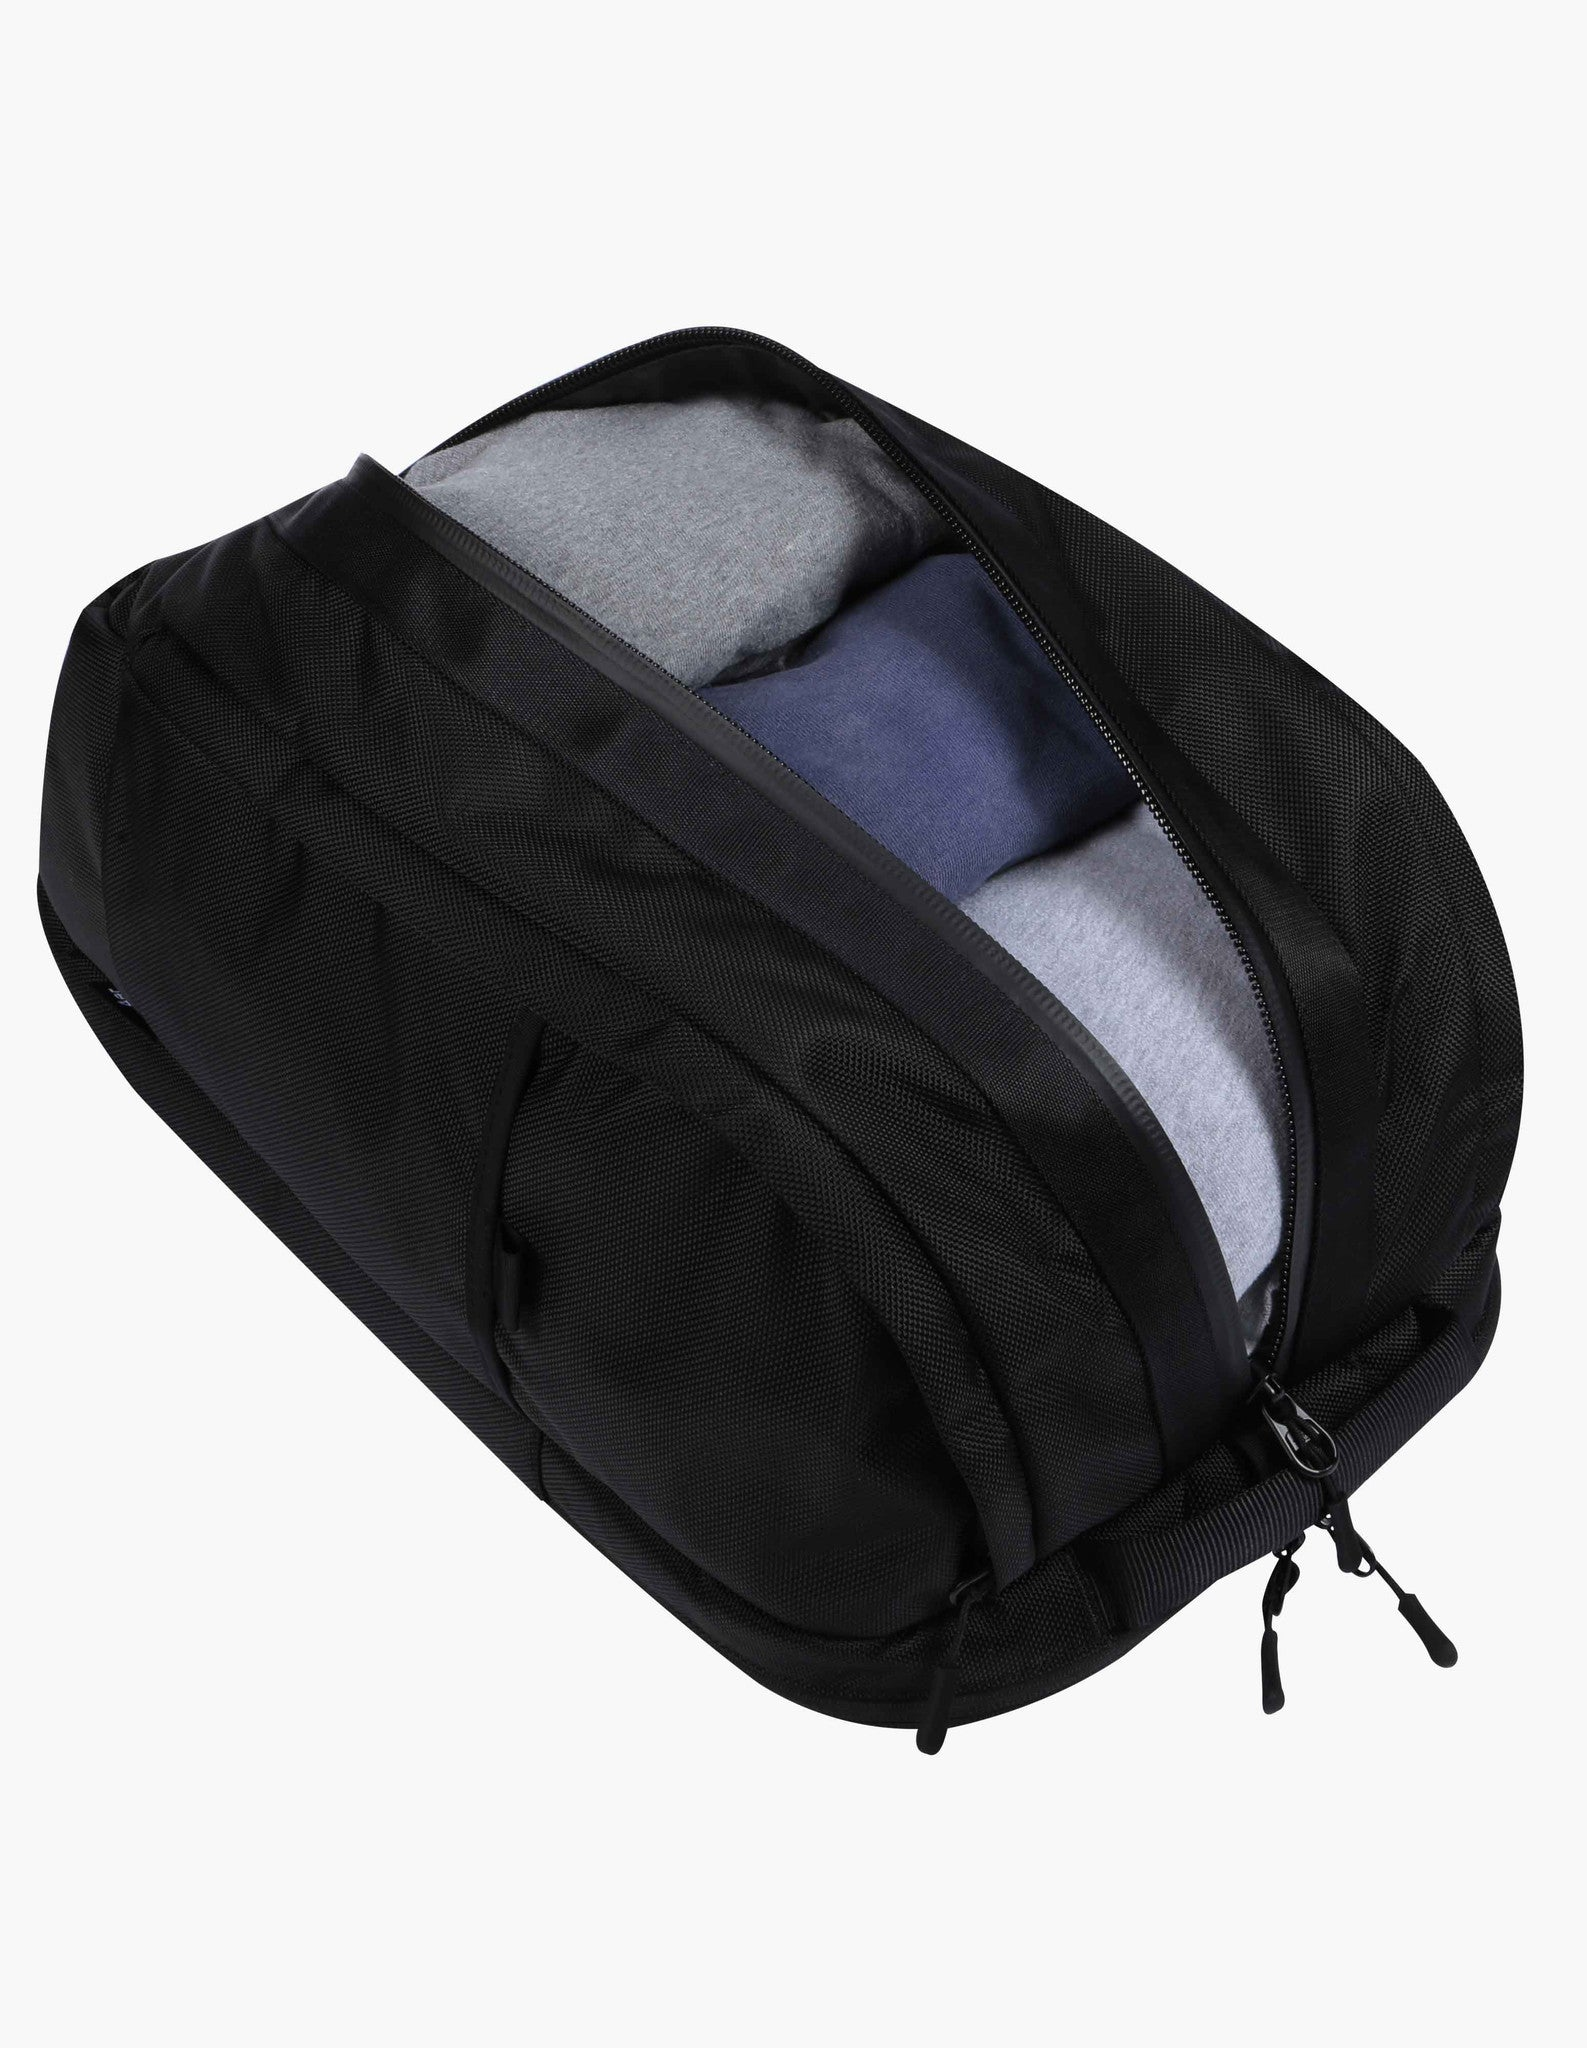 Full view of of black Aer Duffel Pack rucksack with zip open main pocket showing sports clothes